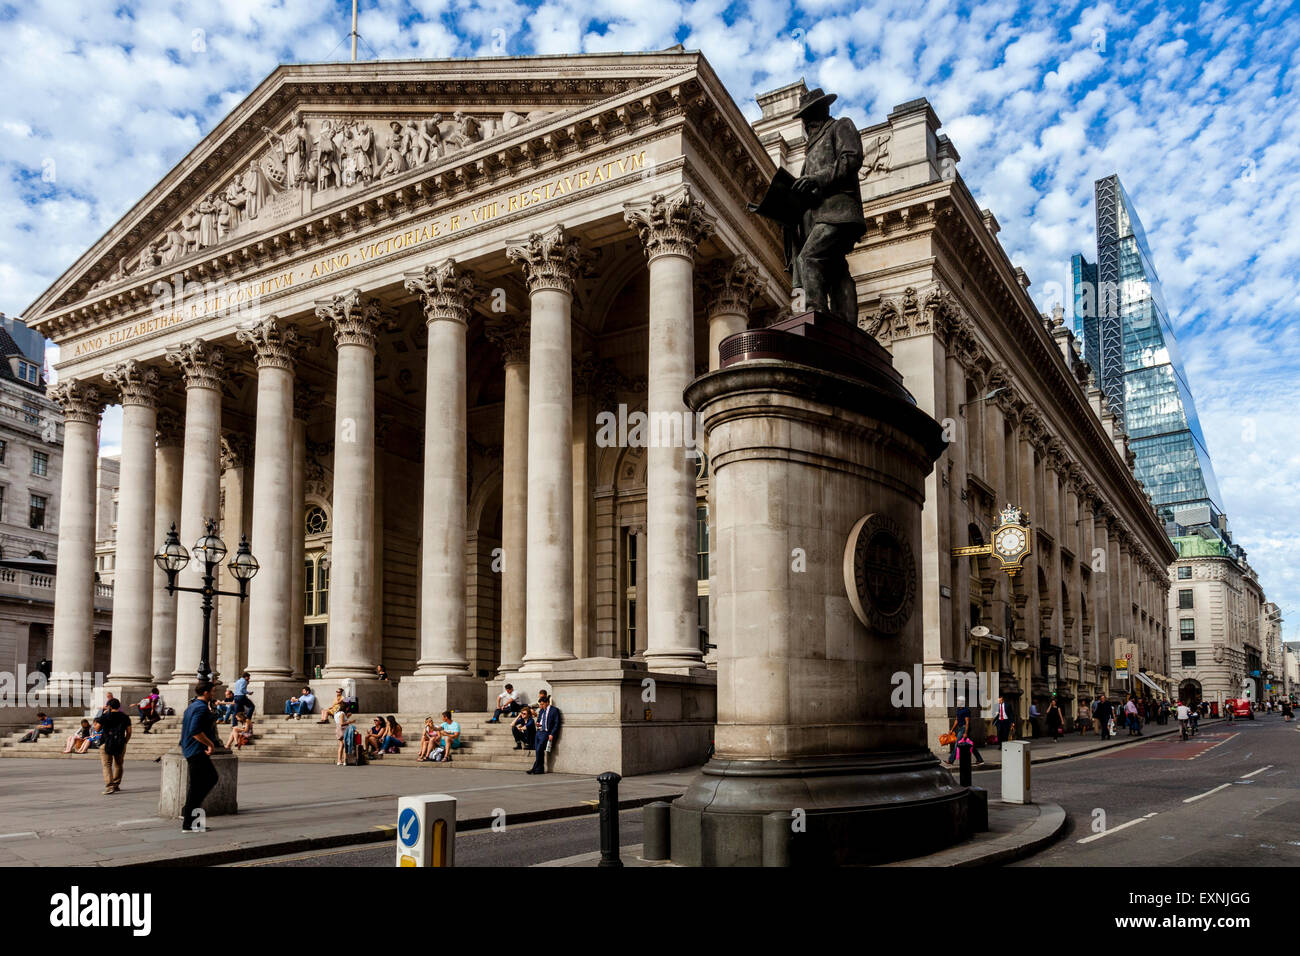 The Royal Exchange Building, London, England - Stock Image